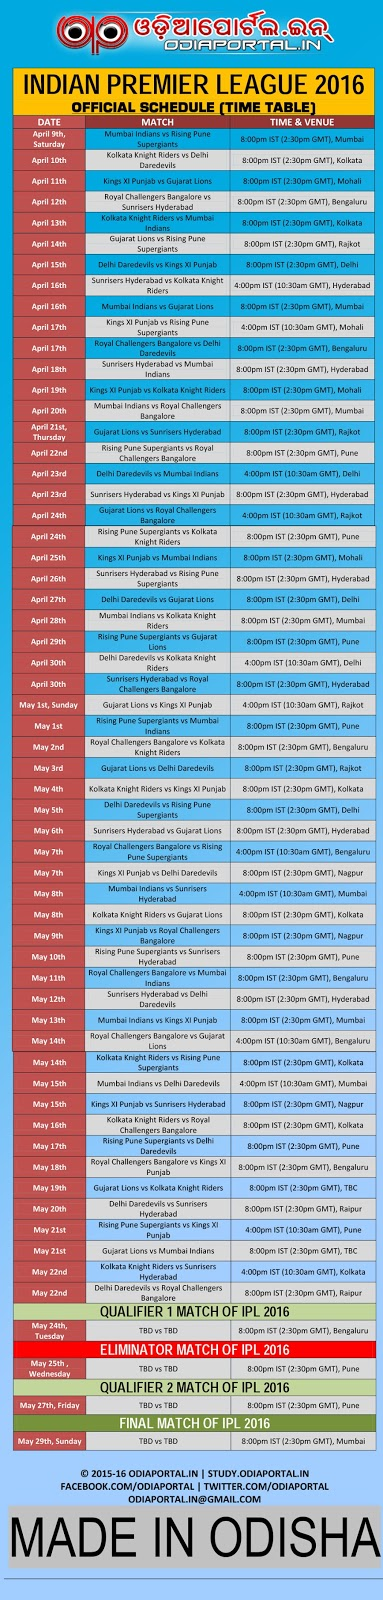 ipl 2019 time table download image